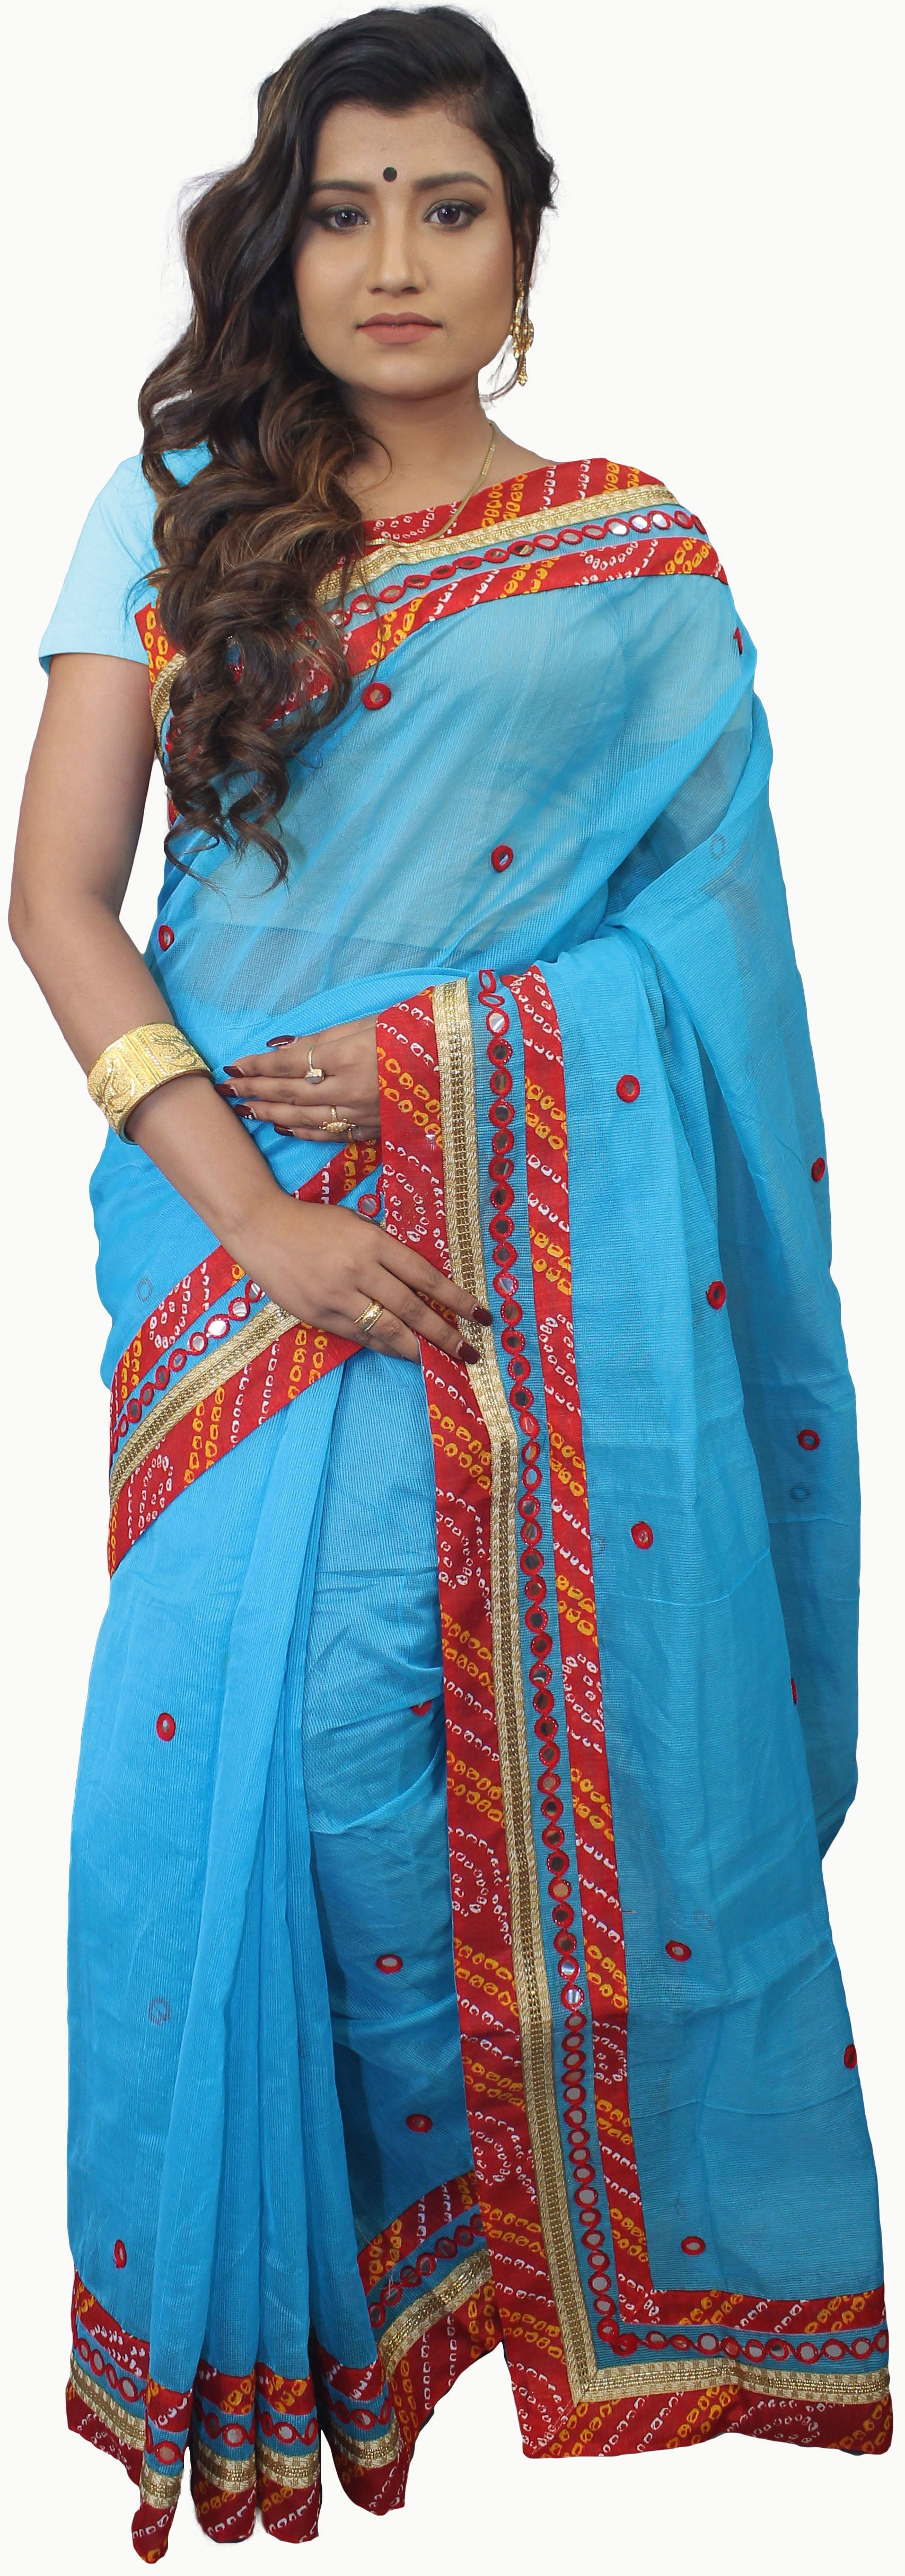 SMSAREE Blue Designer Wedding Partywear Supernet (Cotton) Thread Mirror & Zari Hand Embroidery Work Bridal Saree Sari With Blouse Piece E652